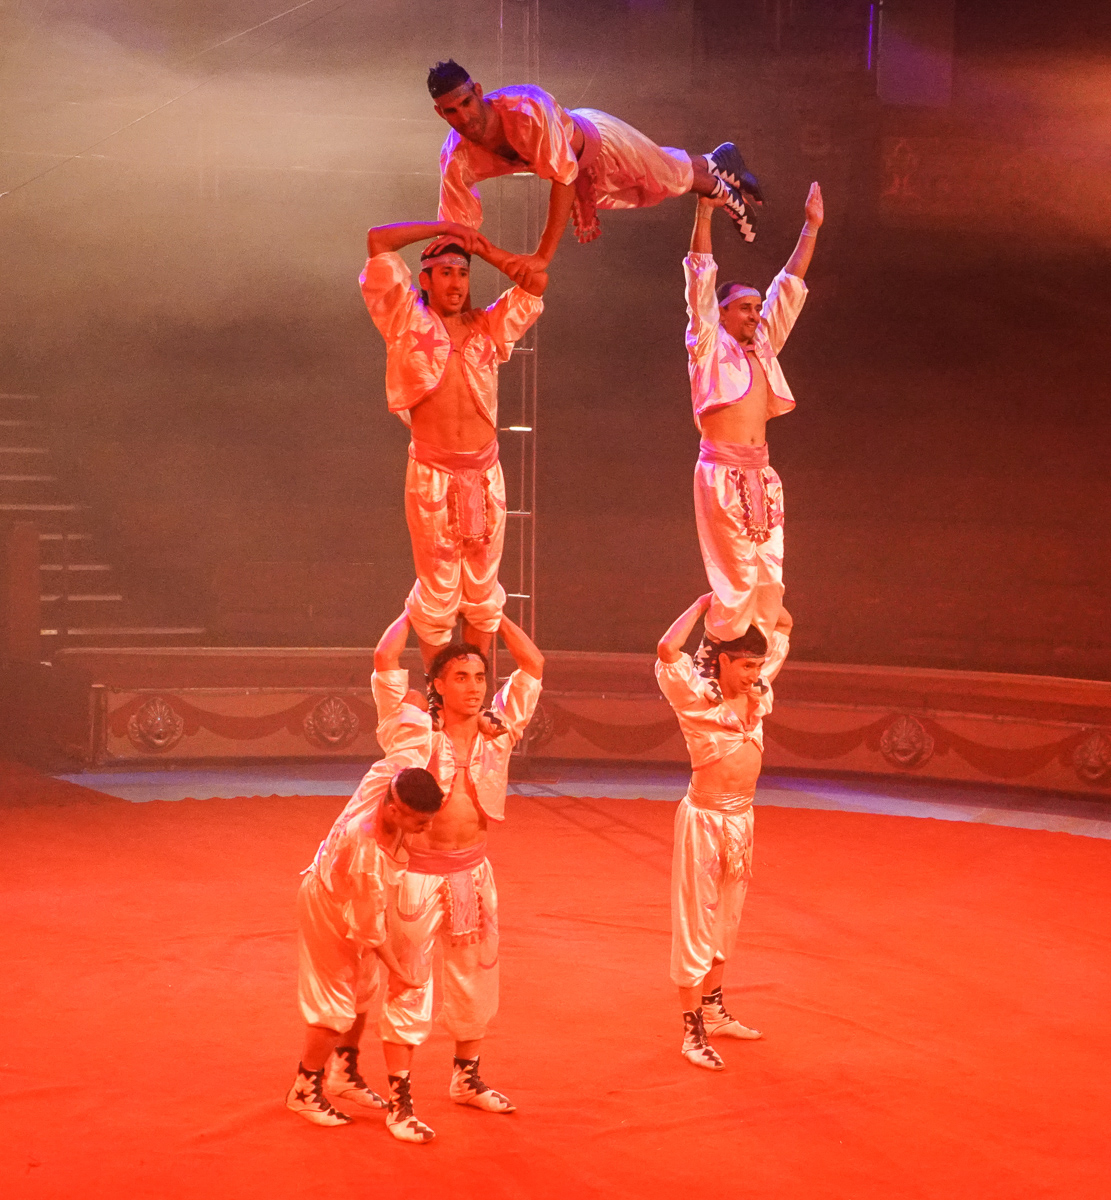 Blackpool Tower Circus by JC